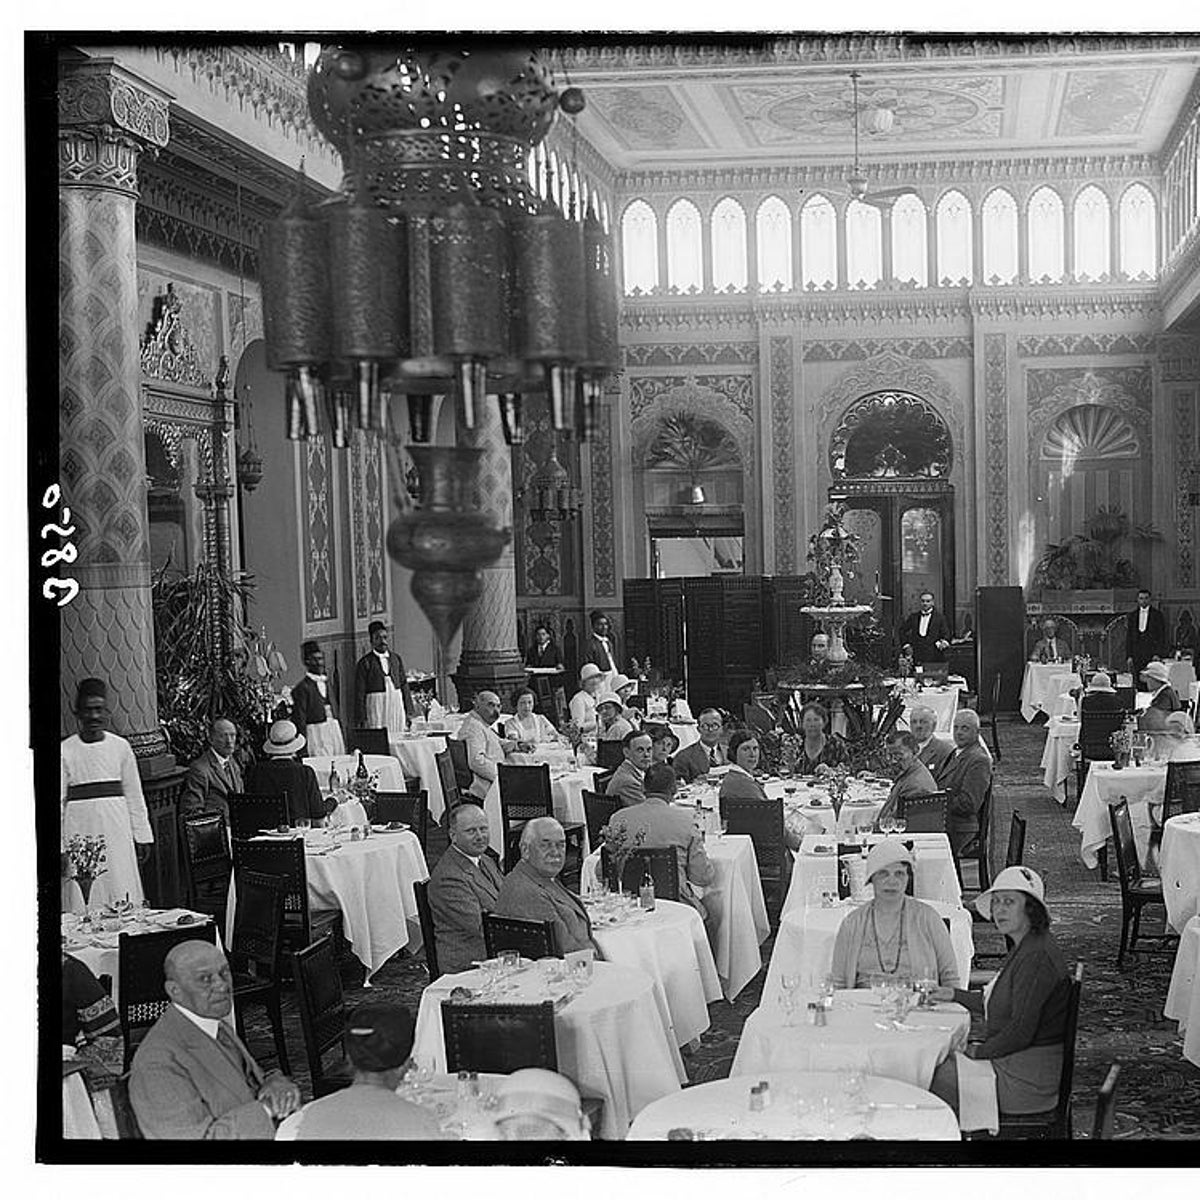 Guests at the Shepheard's Hotel In Cairo, Egypt, in 1920.